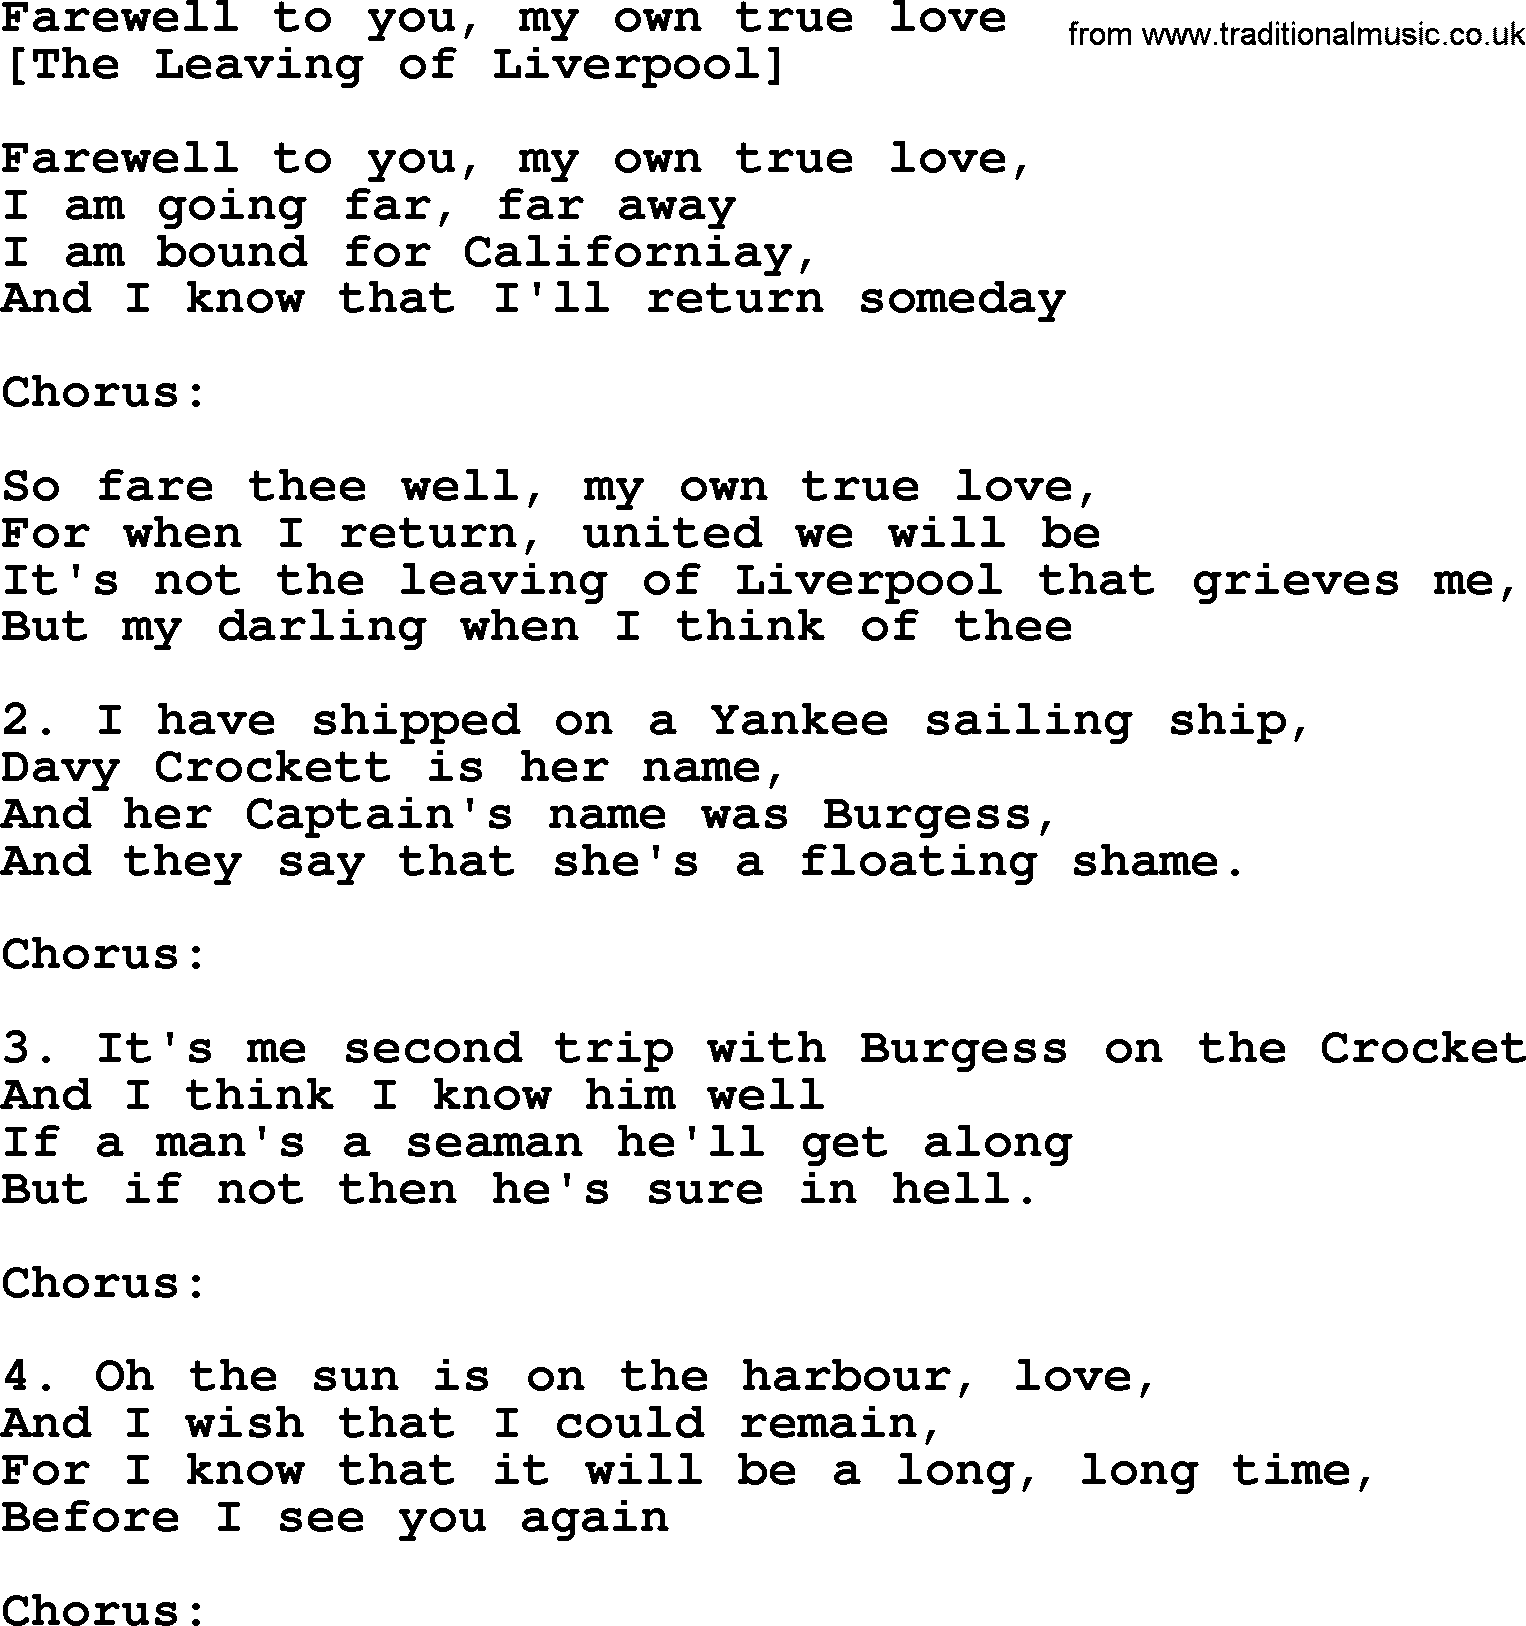 Old English Song Lyrics for Farewell To You, My Own True